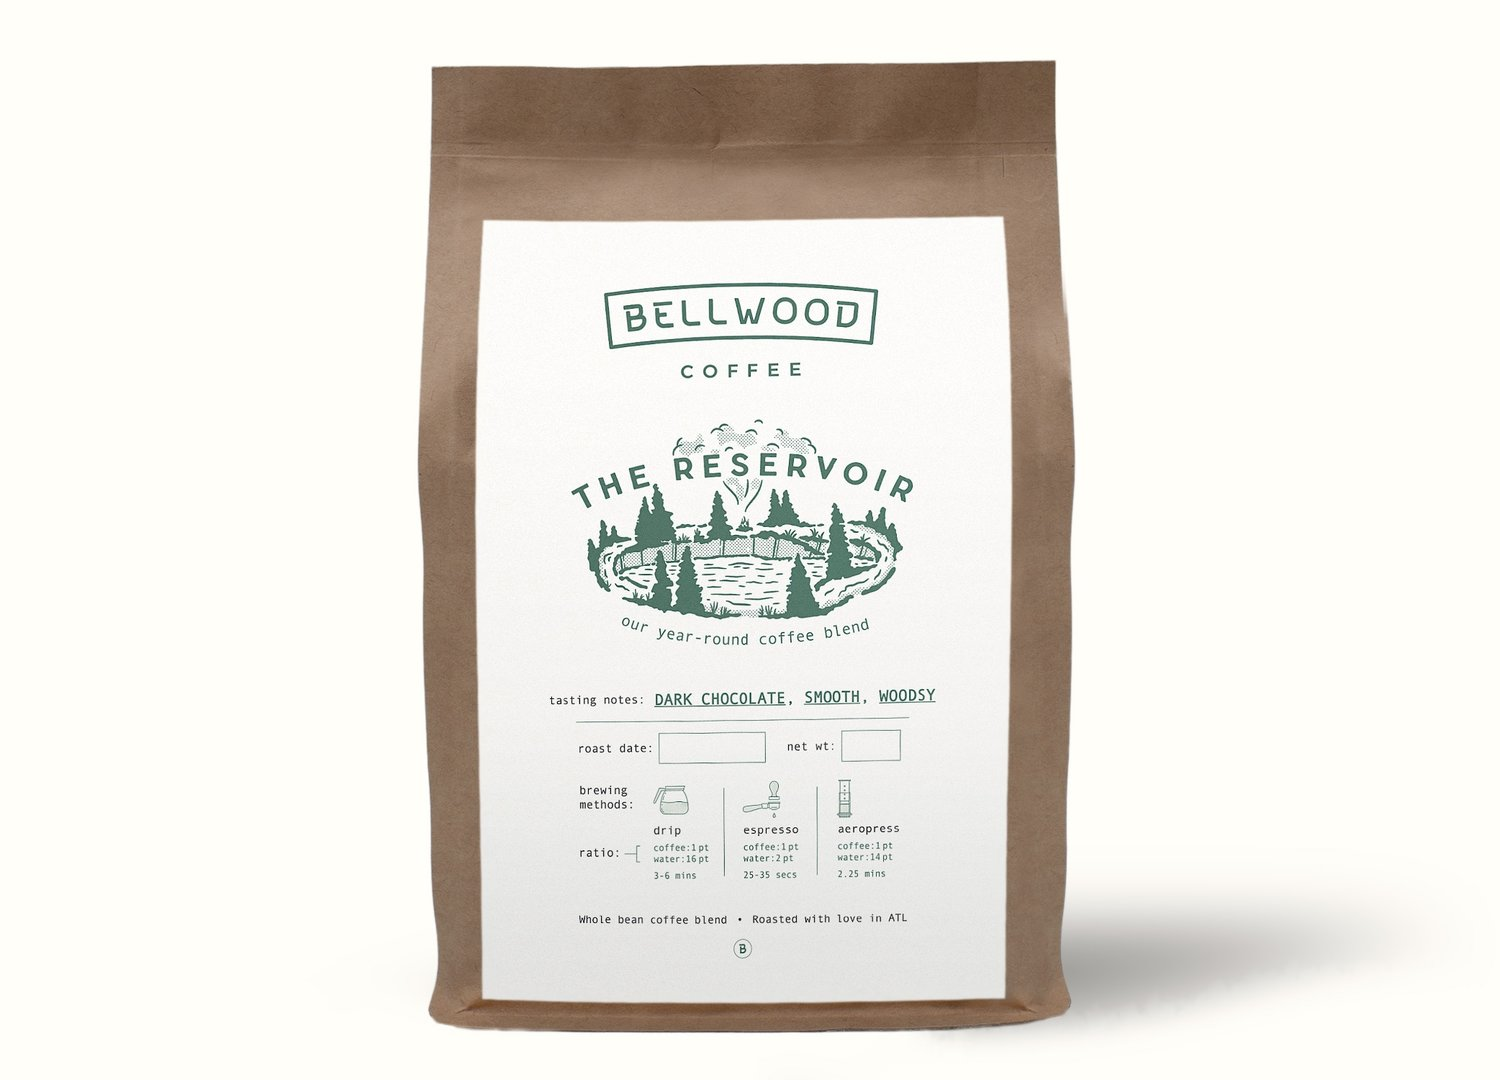 The Reservoir - A safe haven for all coffee drinkers. This year-round blend is sure to please the masses.